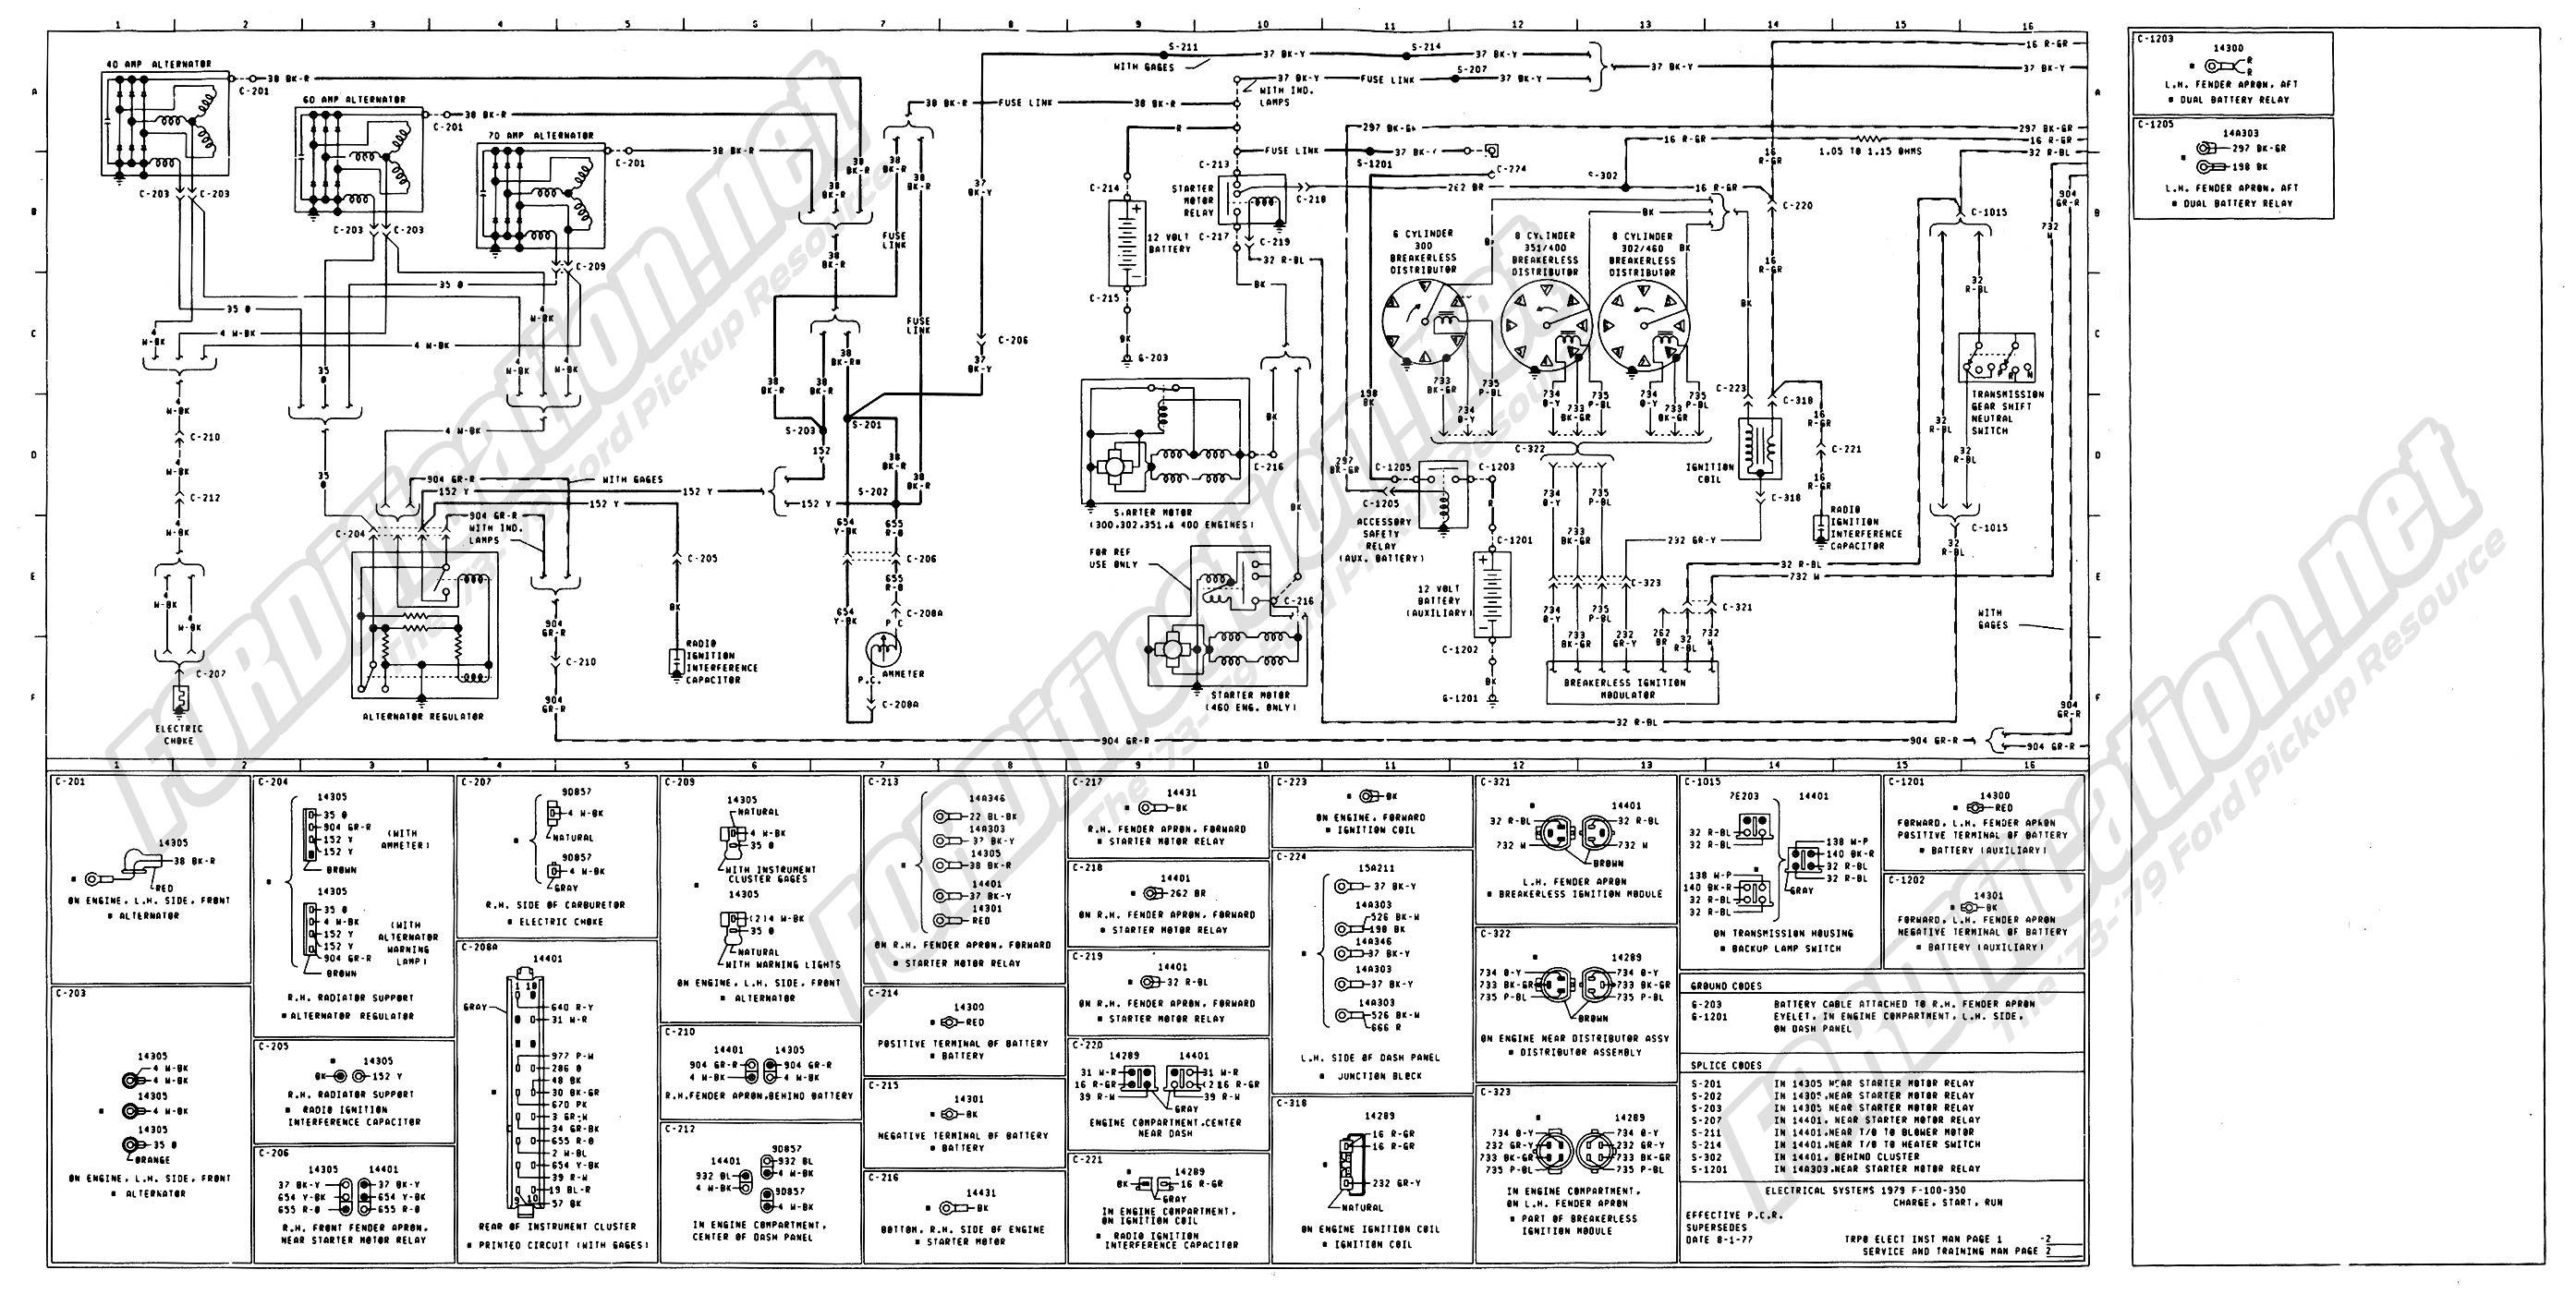 1973 1979 ford truck wiring diagrams schematics fordification net rh  fordification net 2003 Ford E350 Fuse Diagram 2006 Ford E350 Fuse Diagram